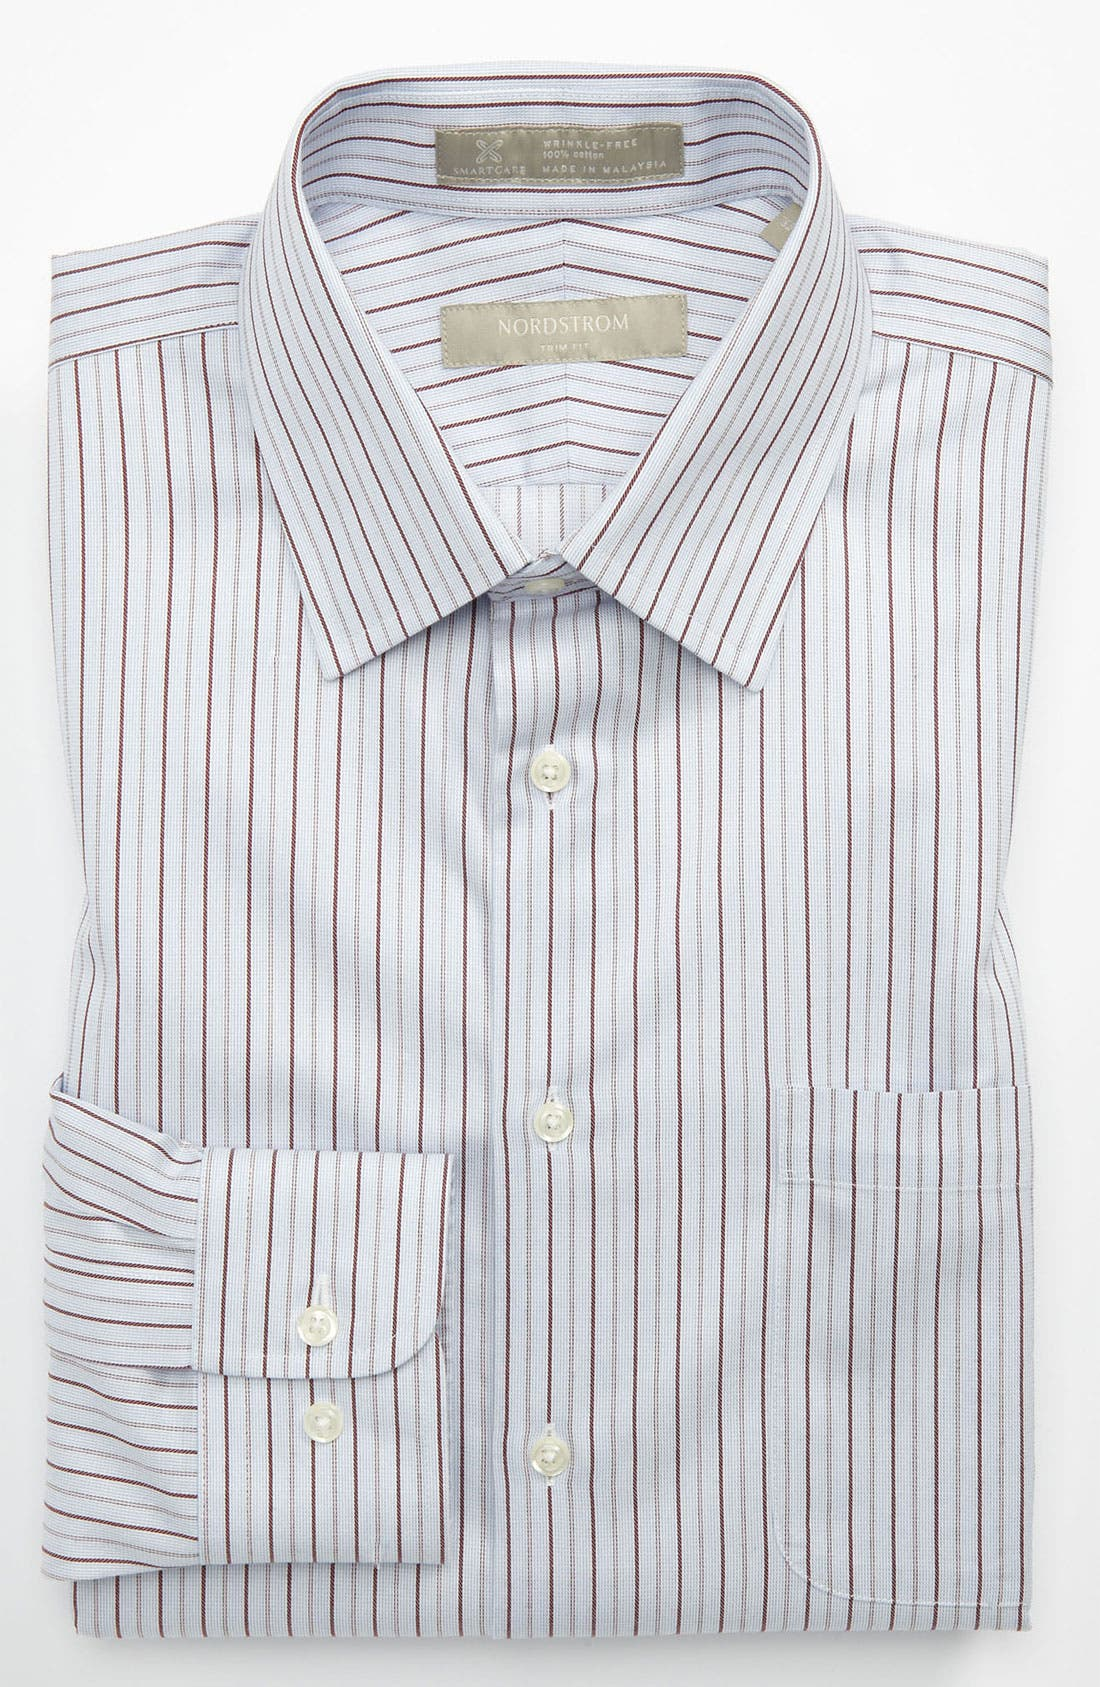 Main Image - Nordstrom Smartcare™ Trim Fit Dress Shirt